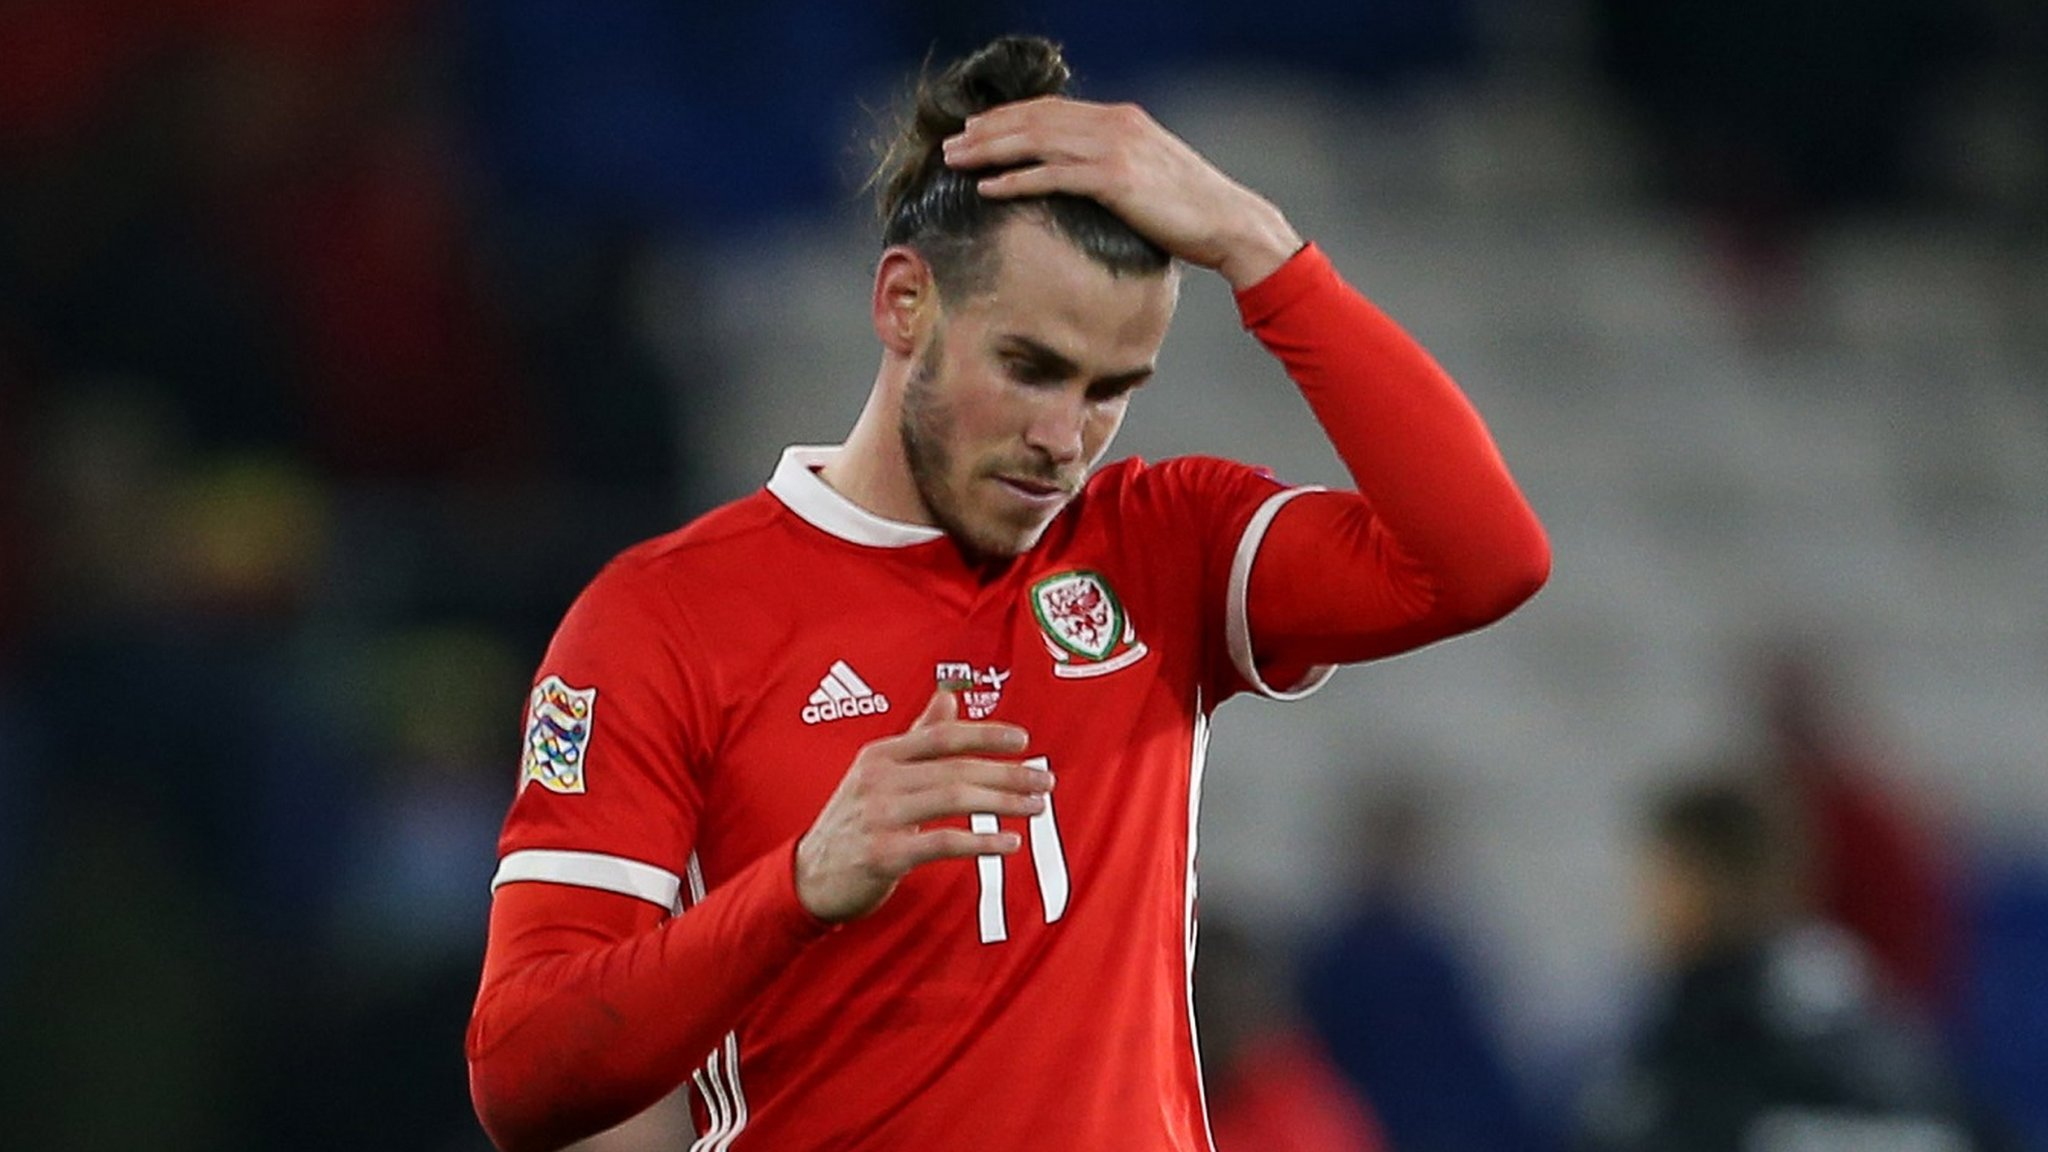 Gareth Bale: Wales out of luck against Denmark, says Real Madrid forward